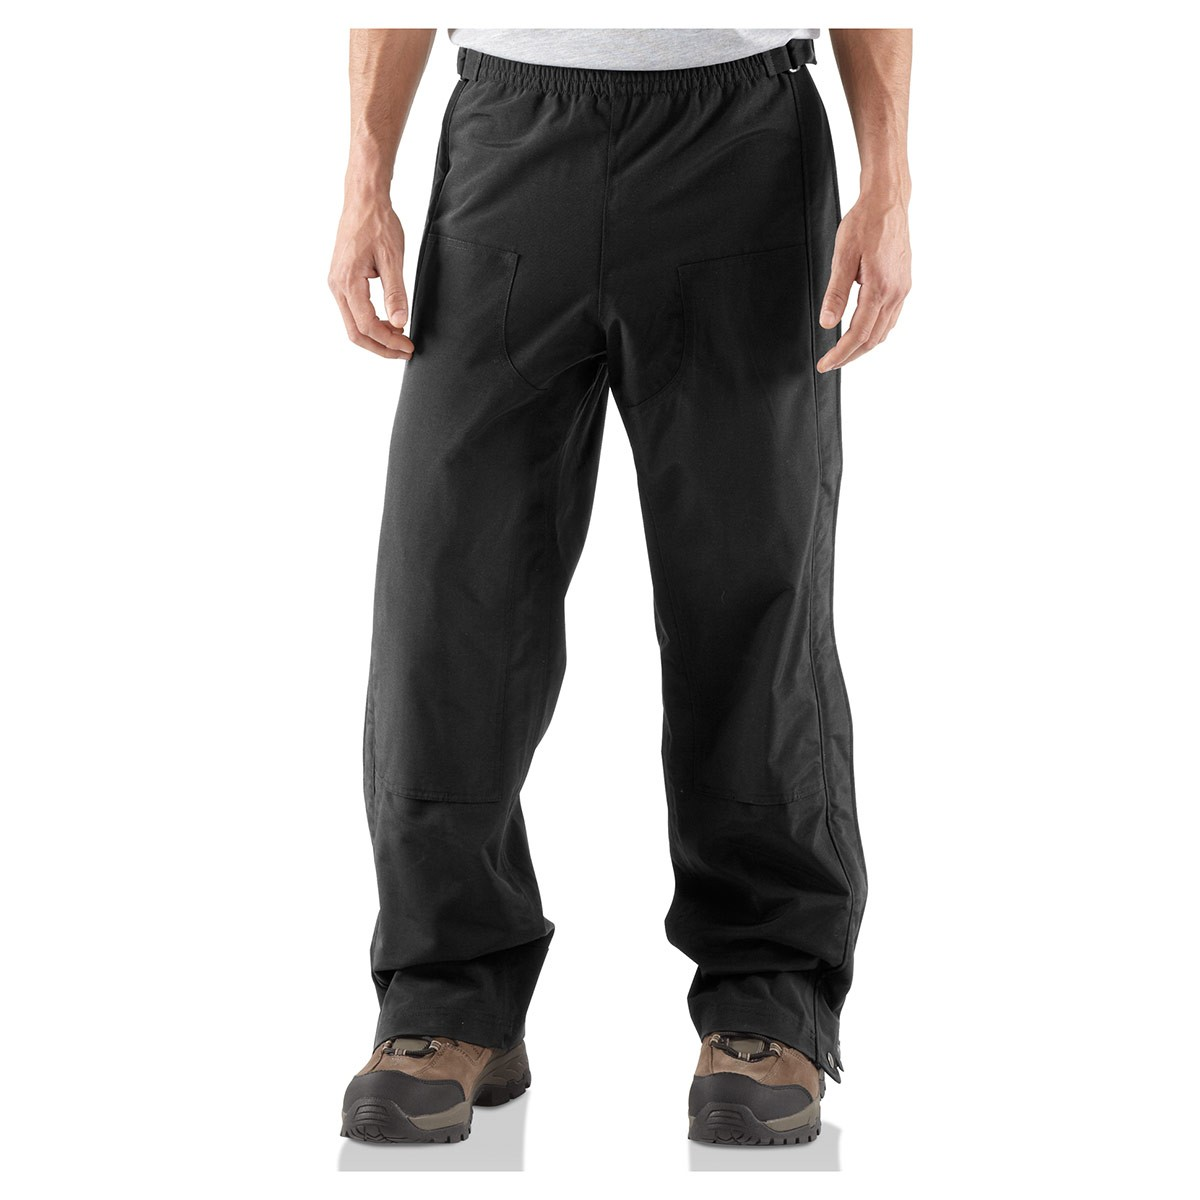 B216- Shoreline Pants In Store Prices May Be Lower Please Call